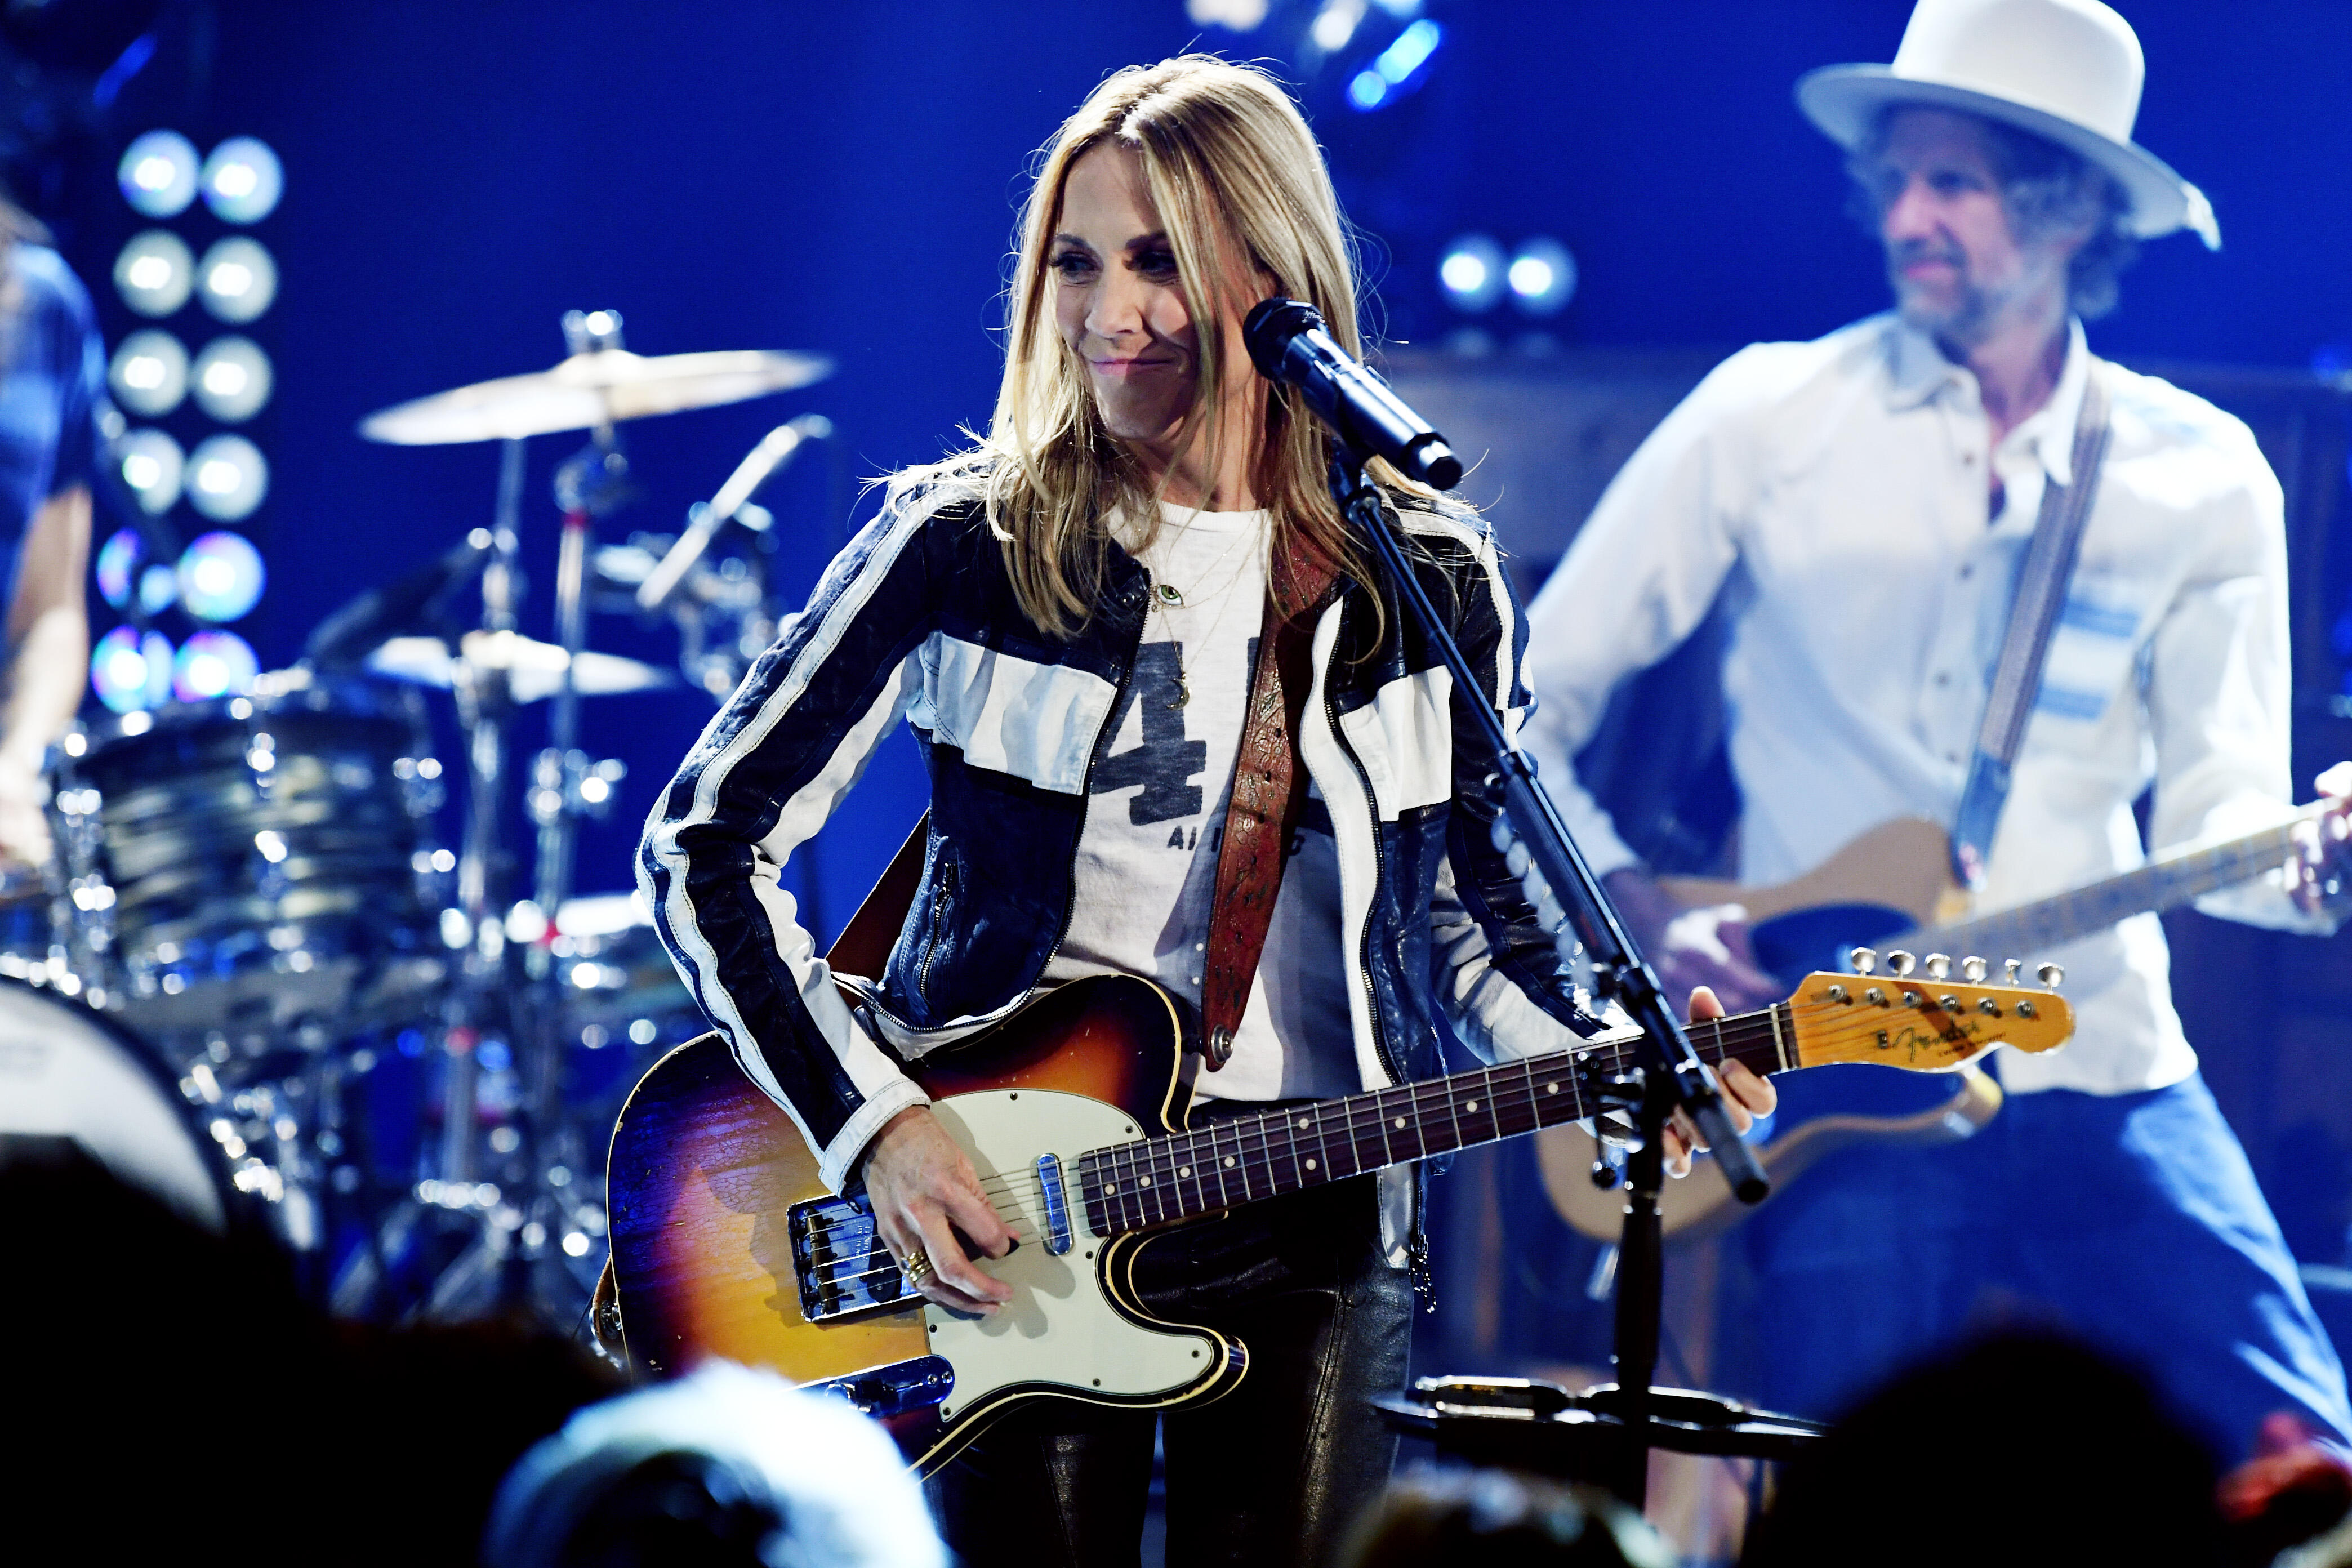 Sheryl Crow Performs Exclusive LA Show to Celebrate Final Album 'Threads'